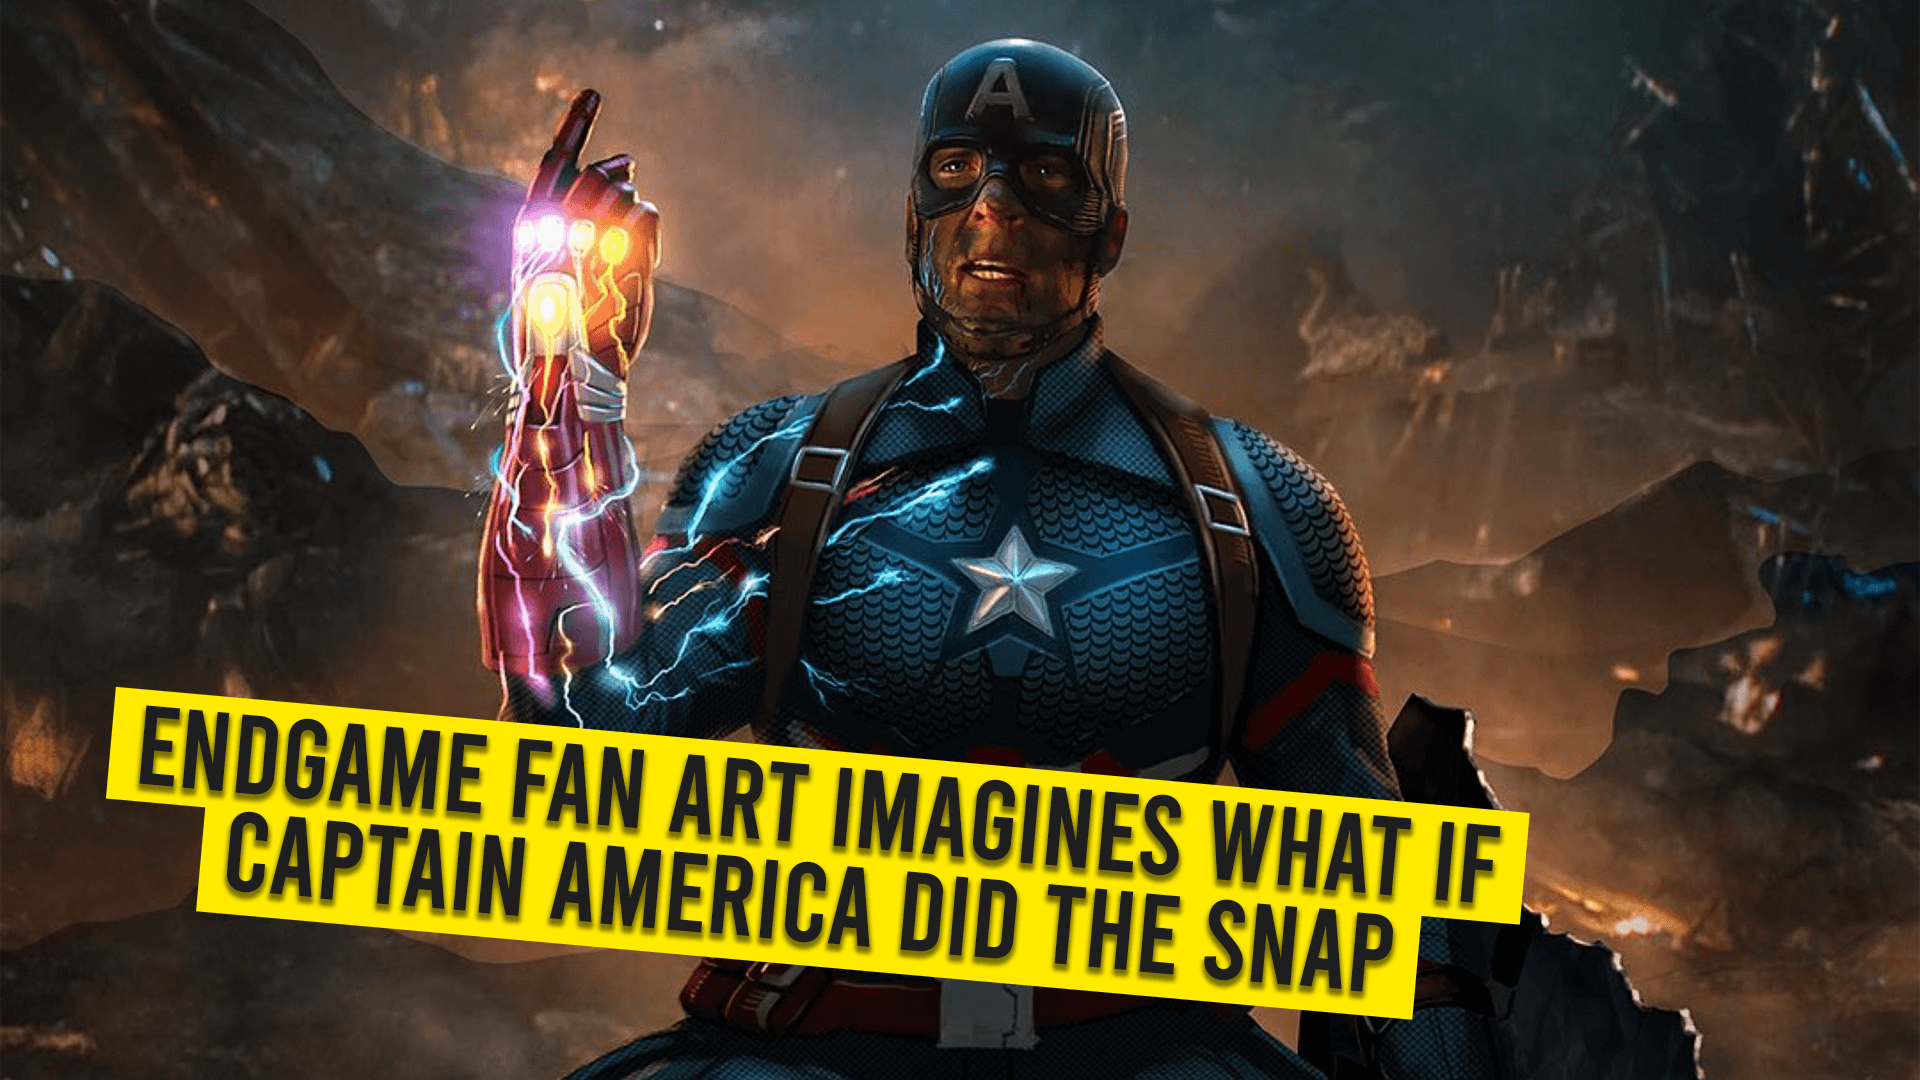 Endgame Fan Art Imagines What If Captain America Did The Snap